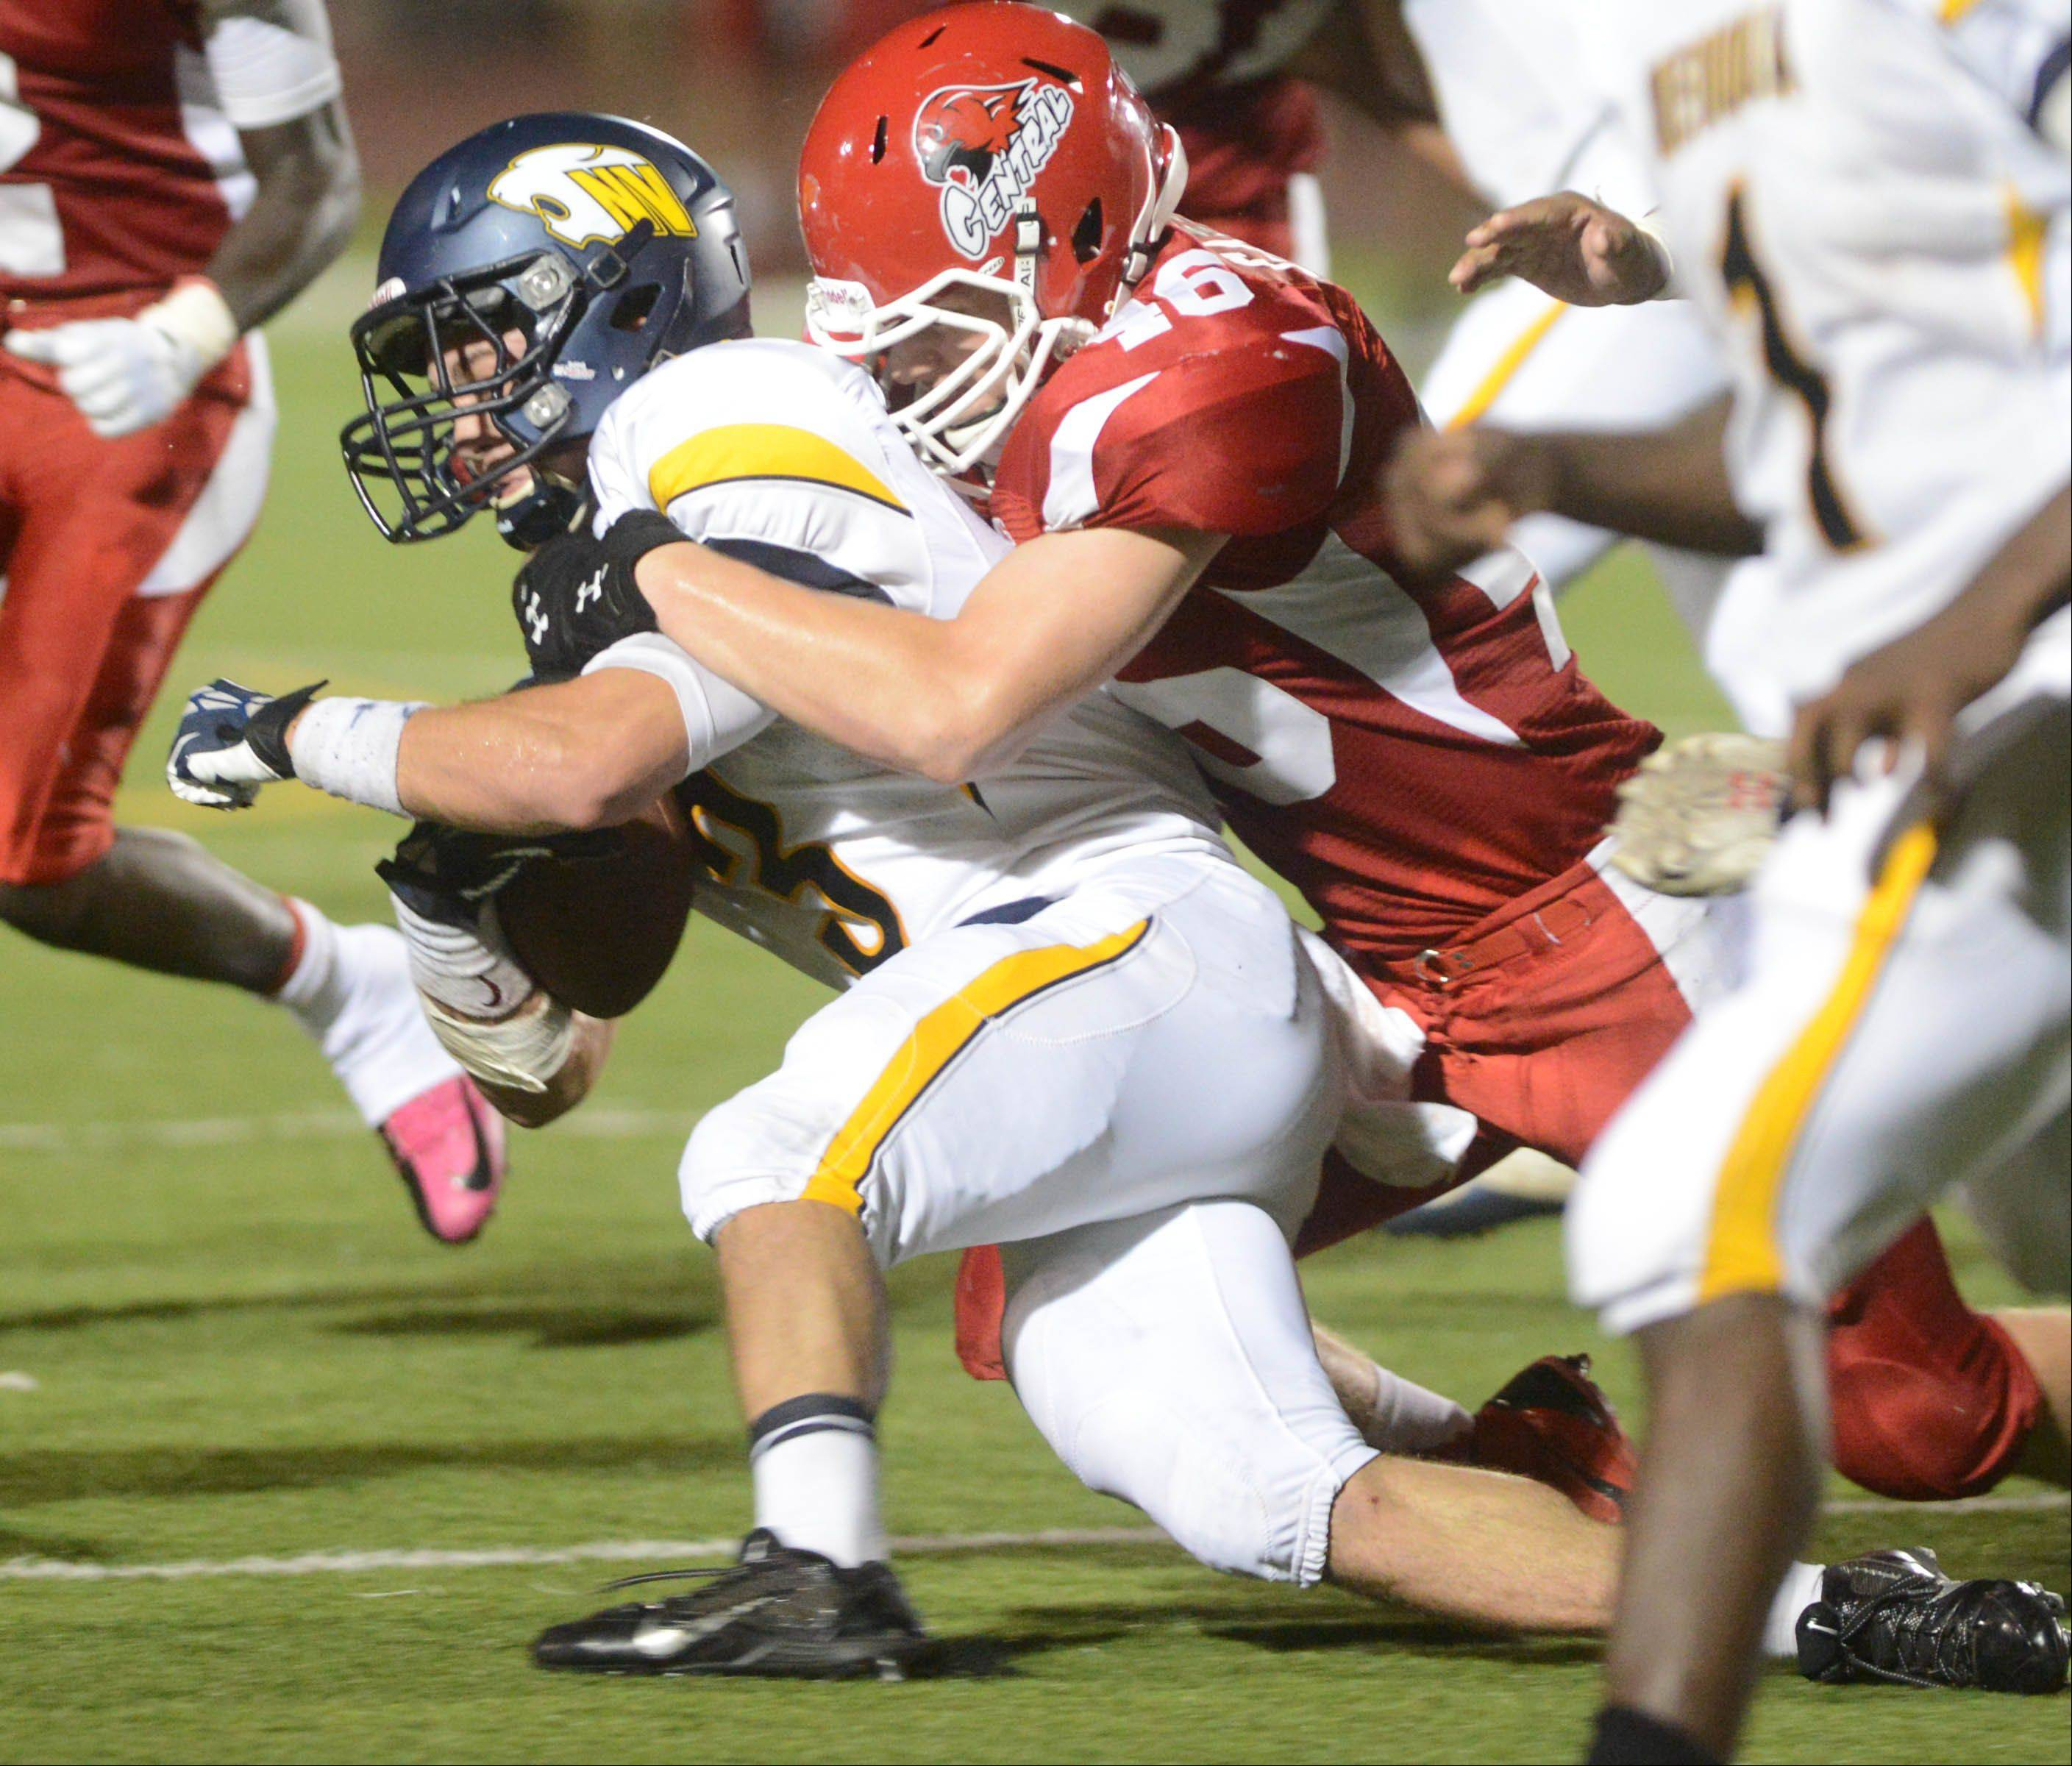 Mikey Dudek, left, of Neuqua Valley is pulled down by Billy Gammon of Naperville Central Friday in Naperville.